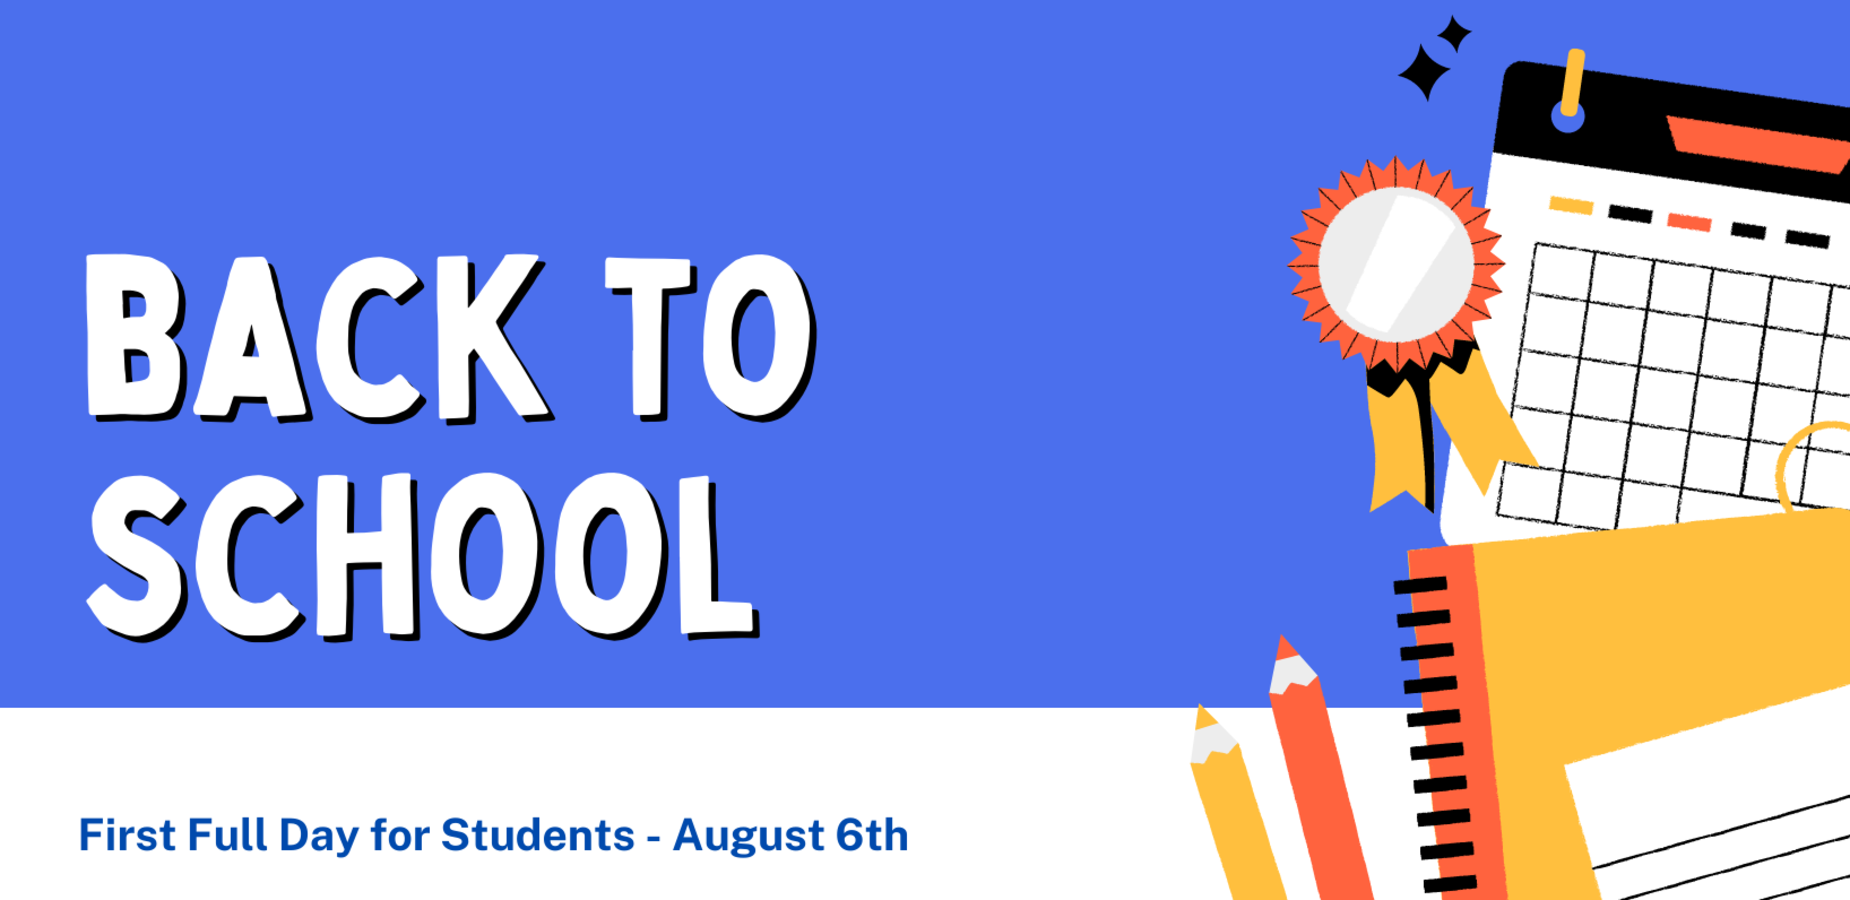 Back to school August 6th